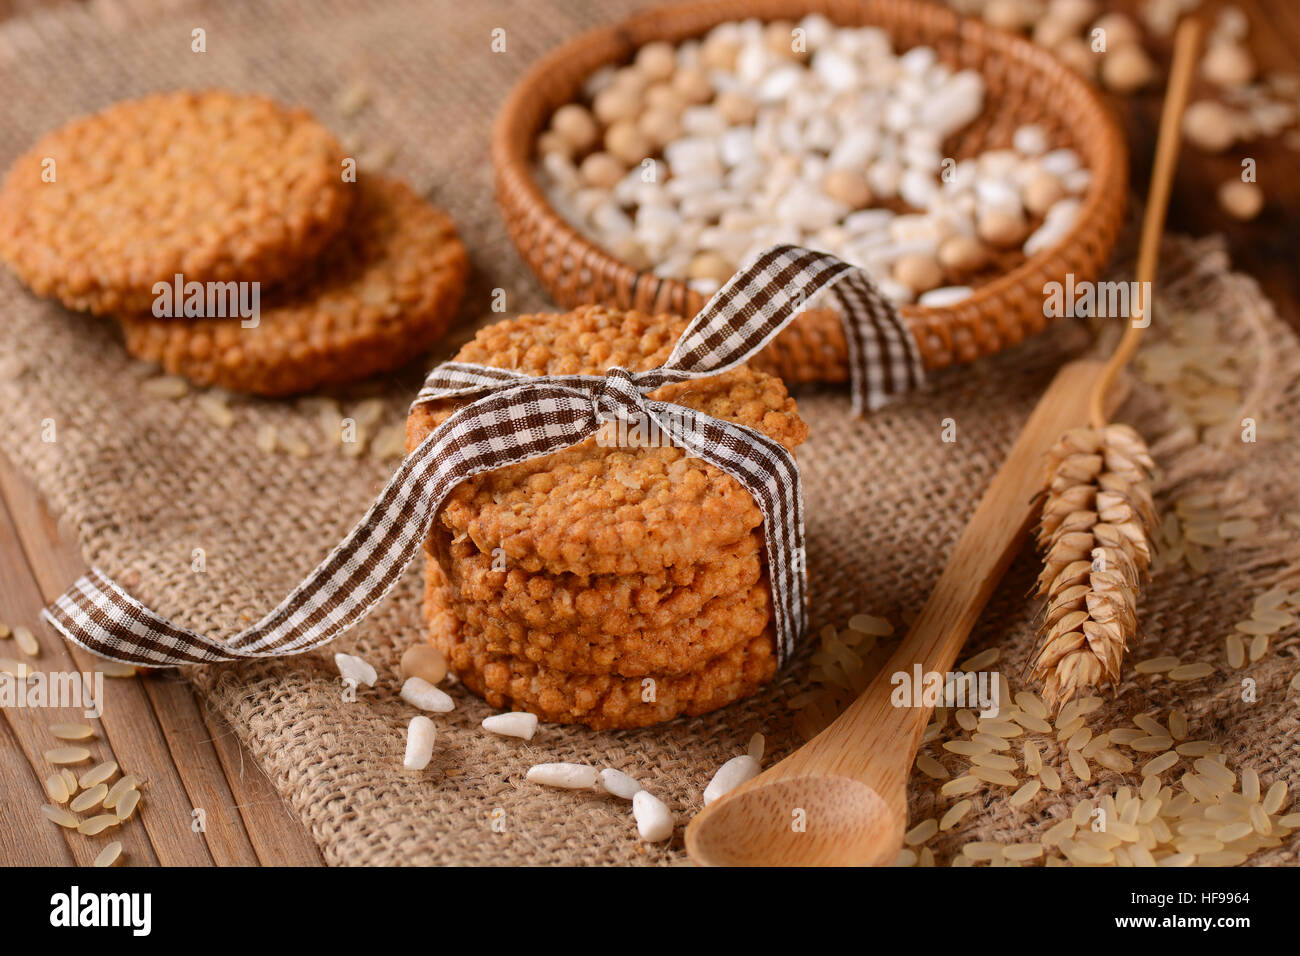 biscuits on cereal and rice homemade - Stock Image